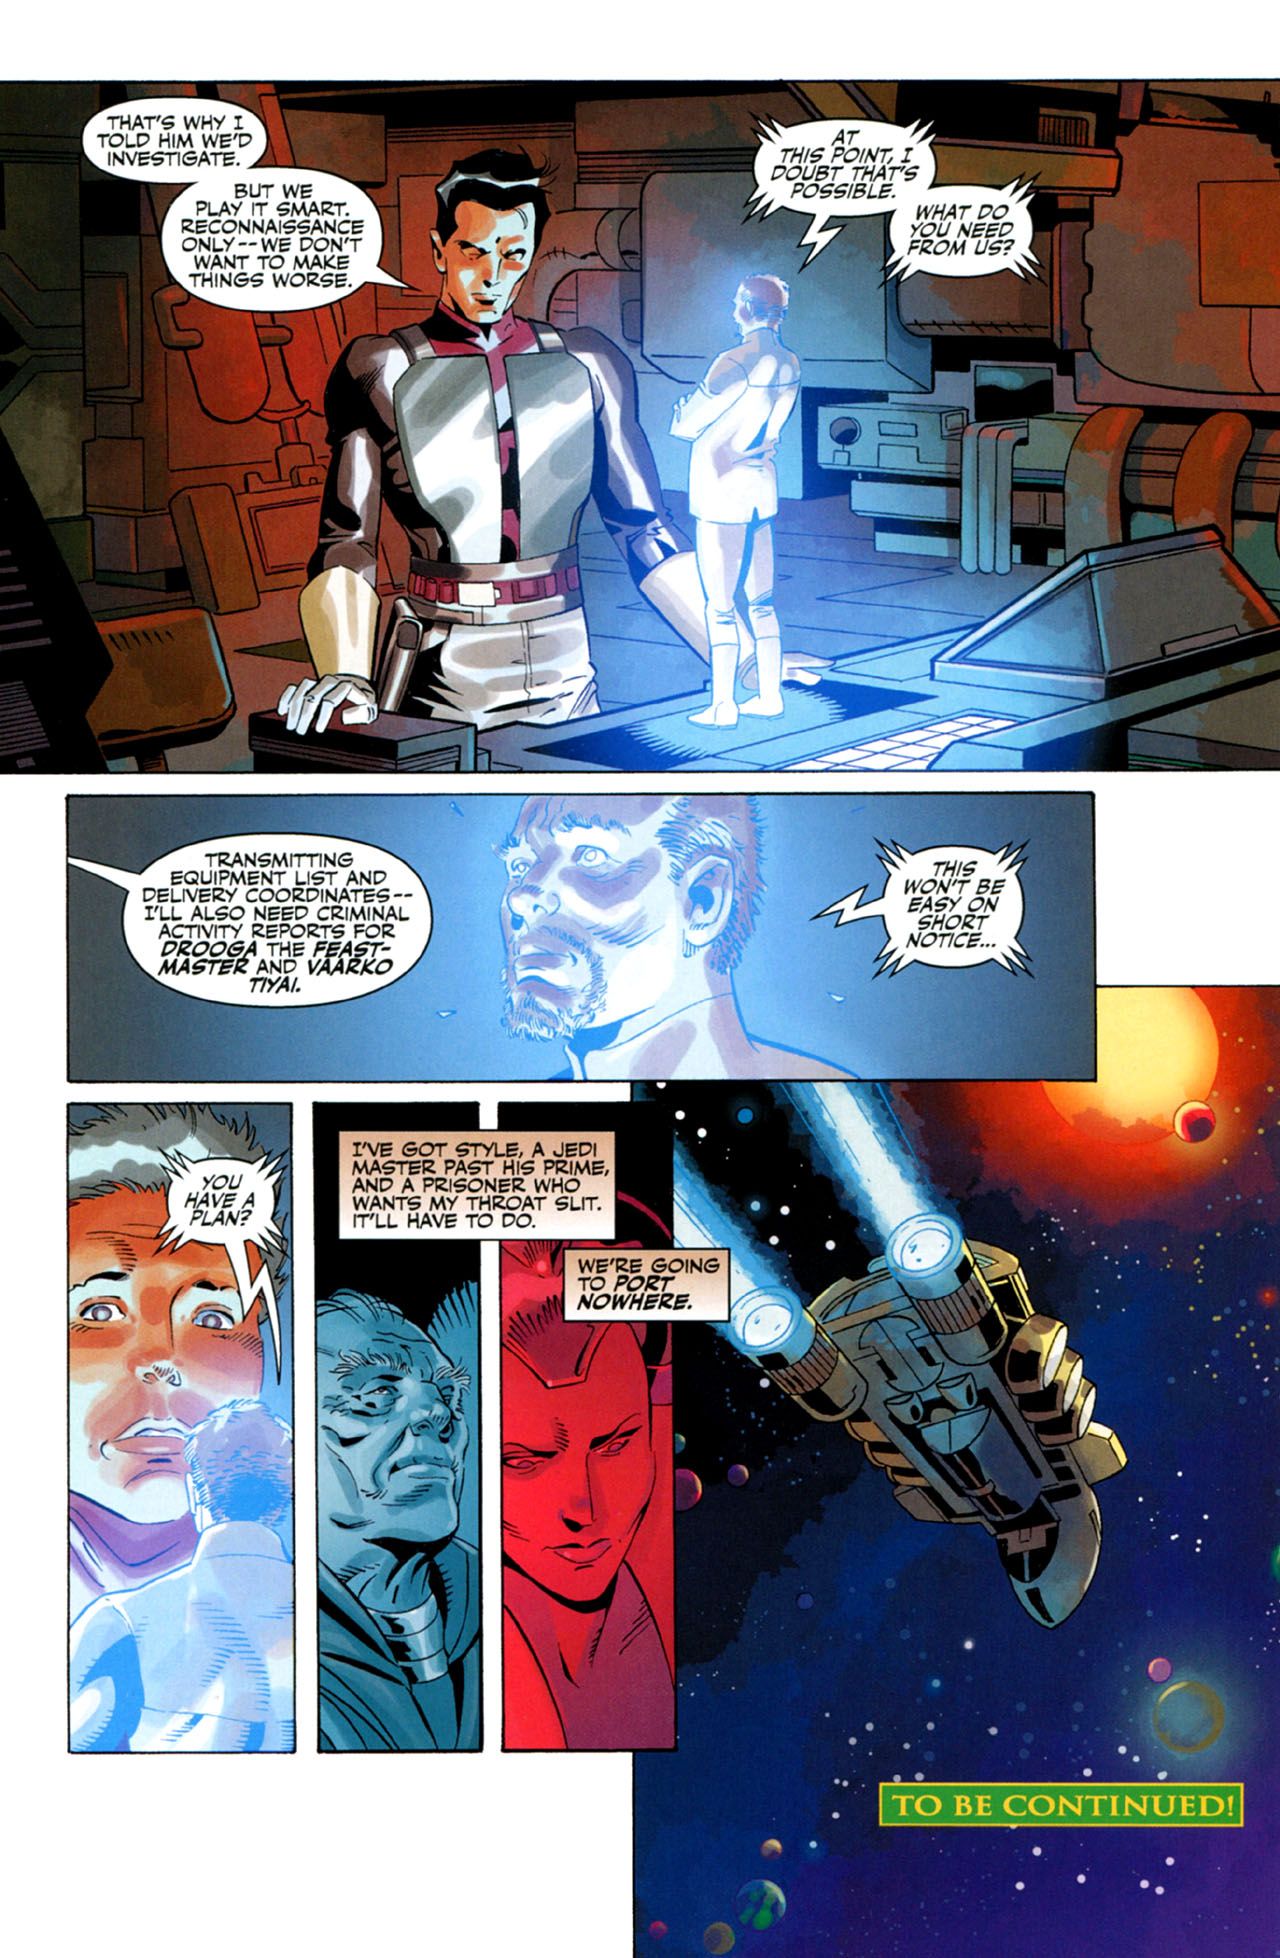 Read online Star Wars: The Old Republic - The Lost Suns comic -  Issue #2 - 23